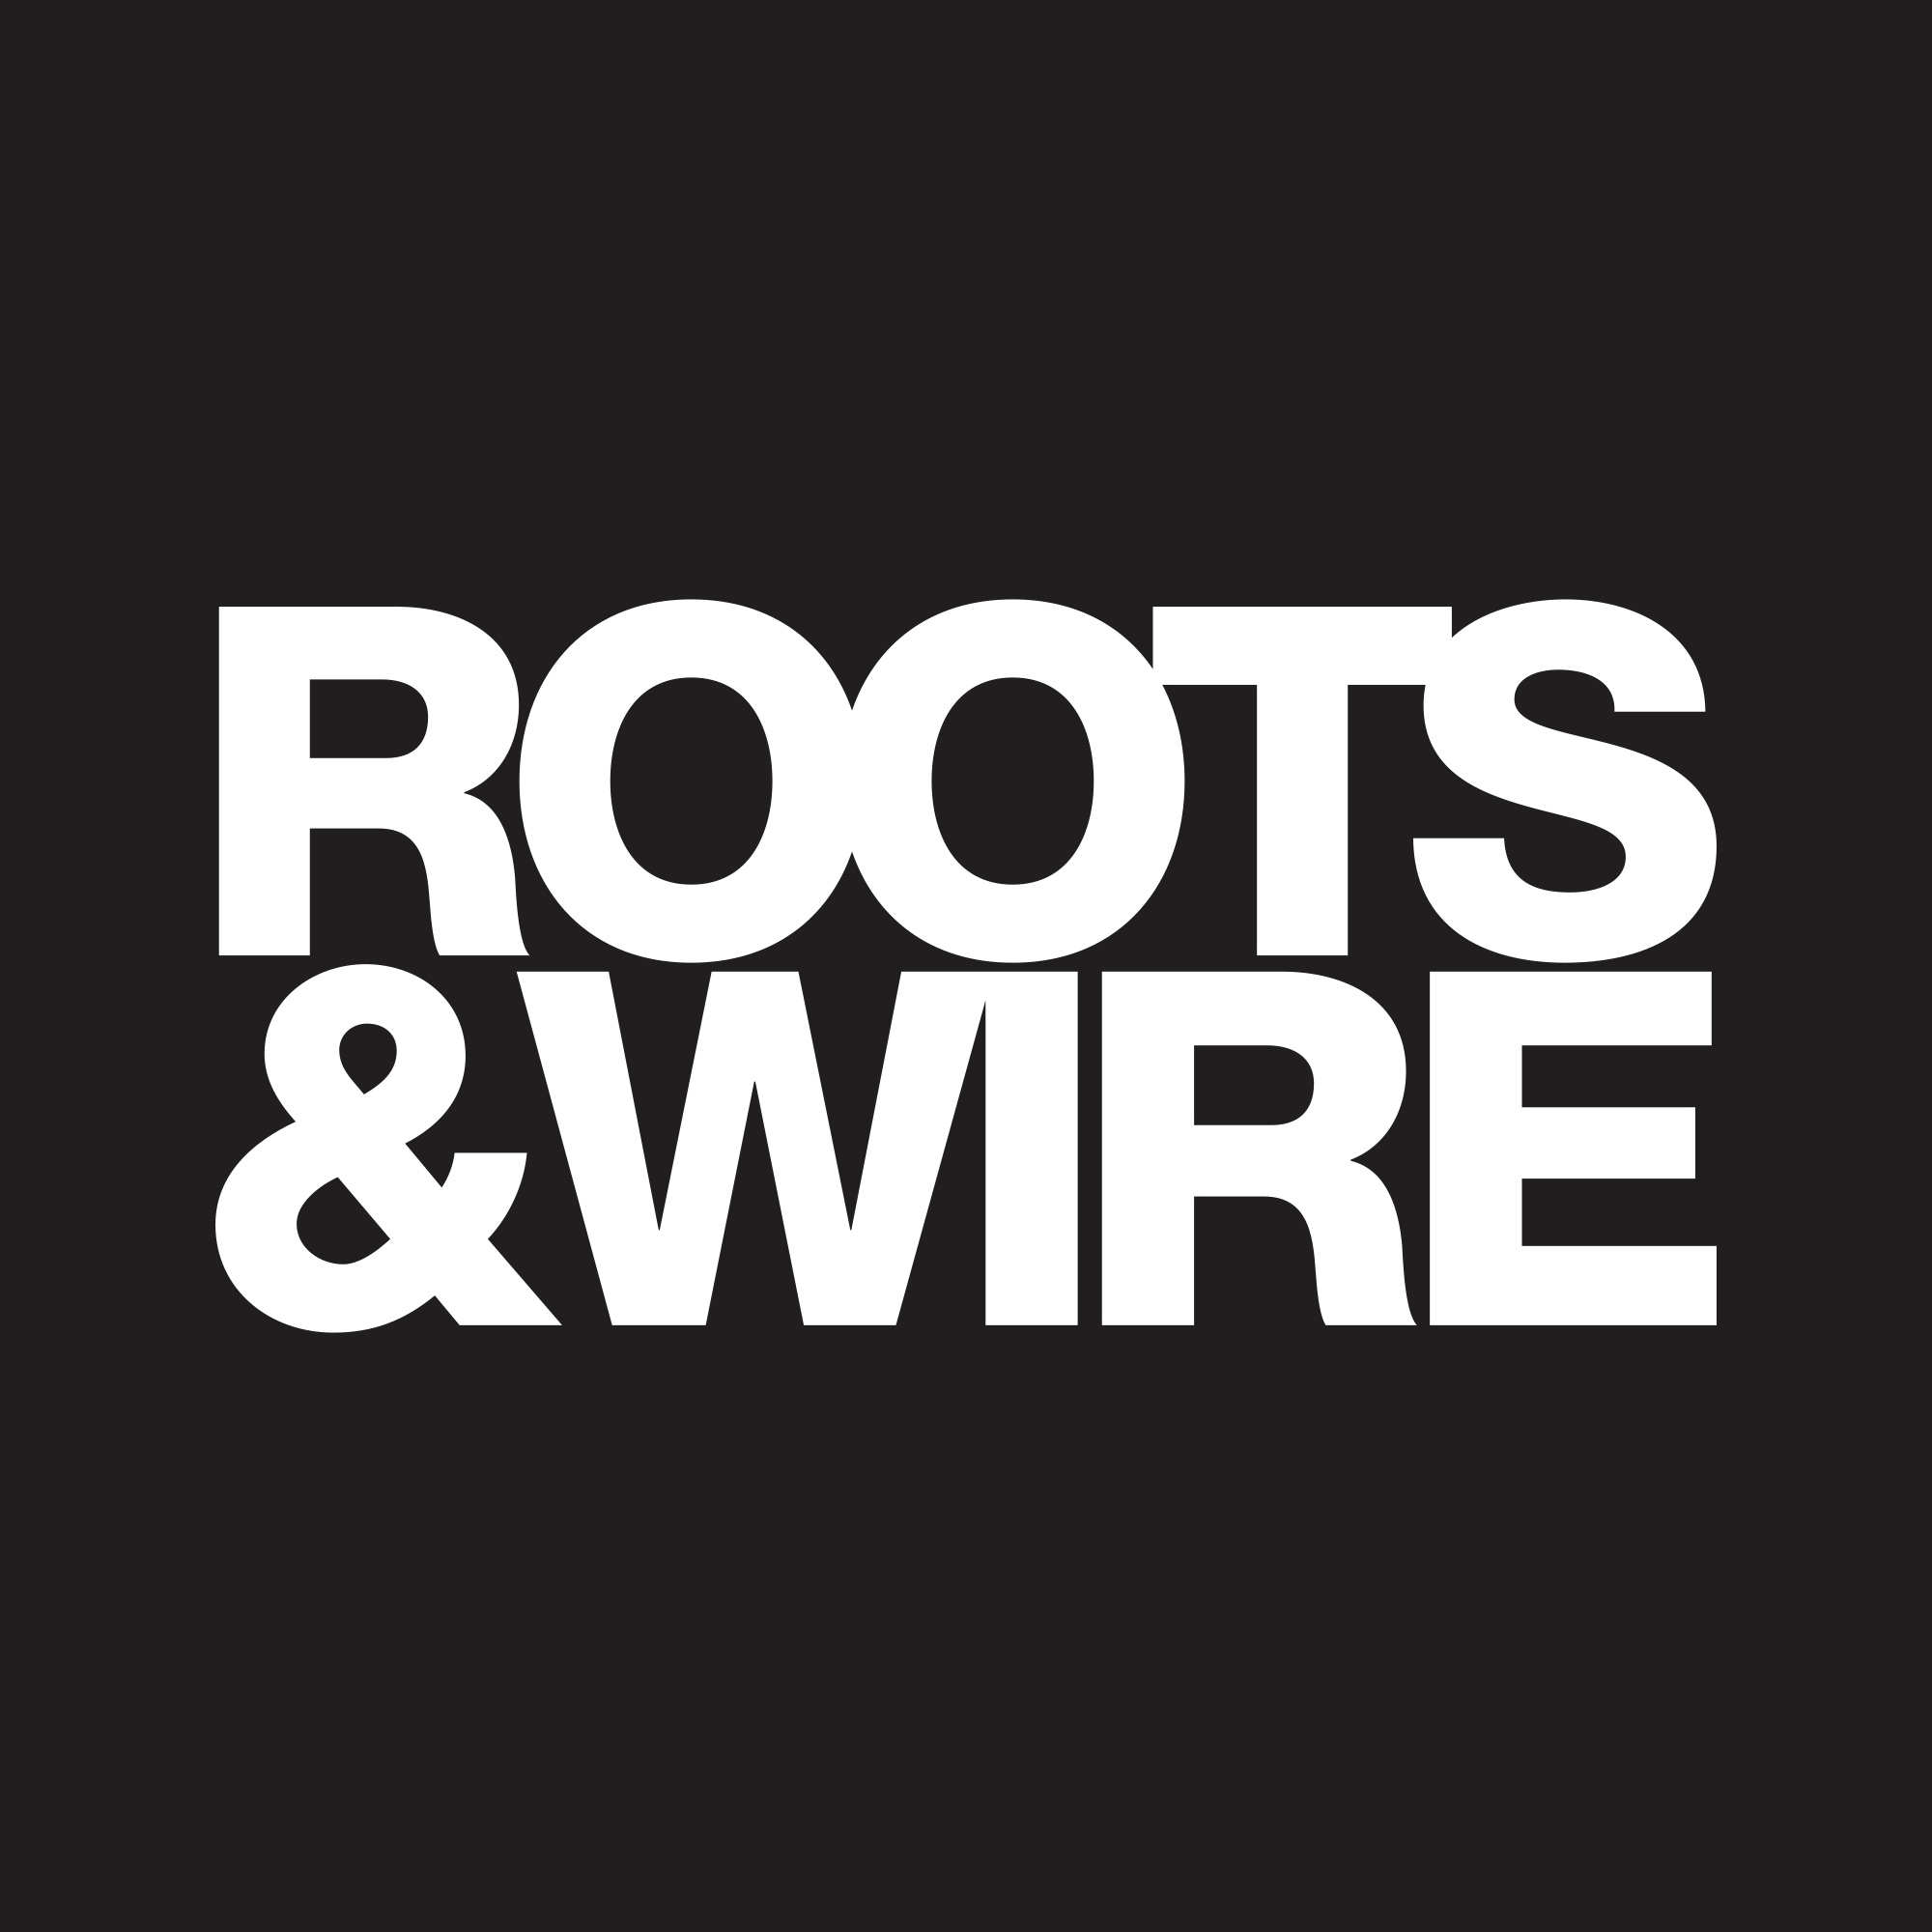 Roots & Wire Records